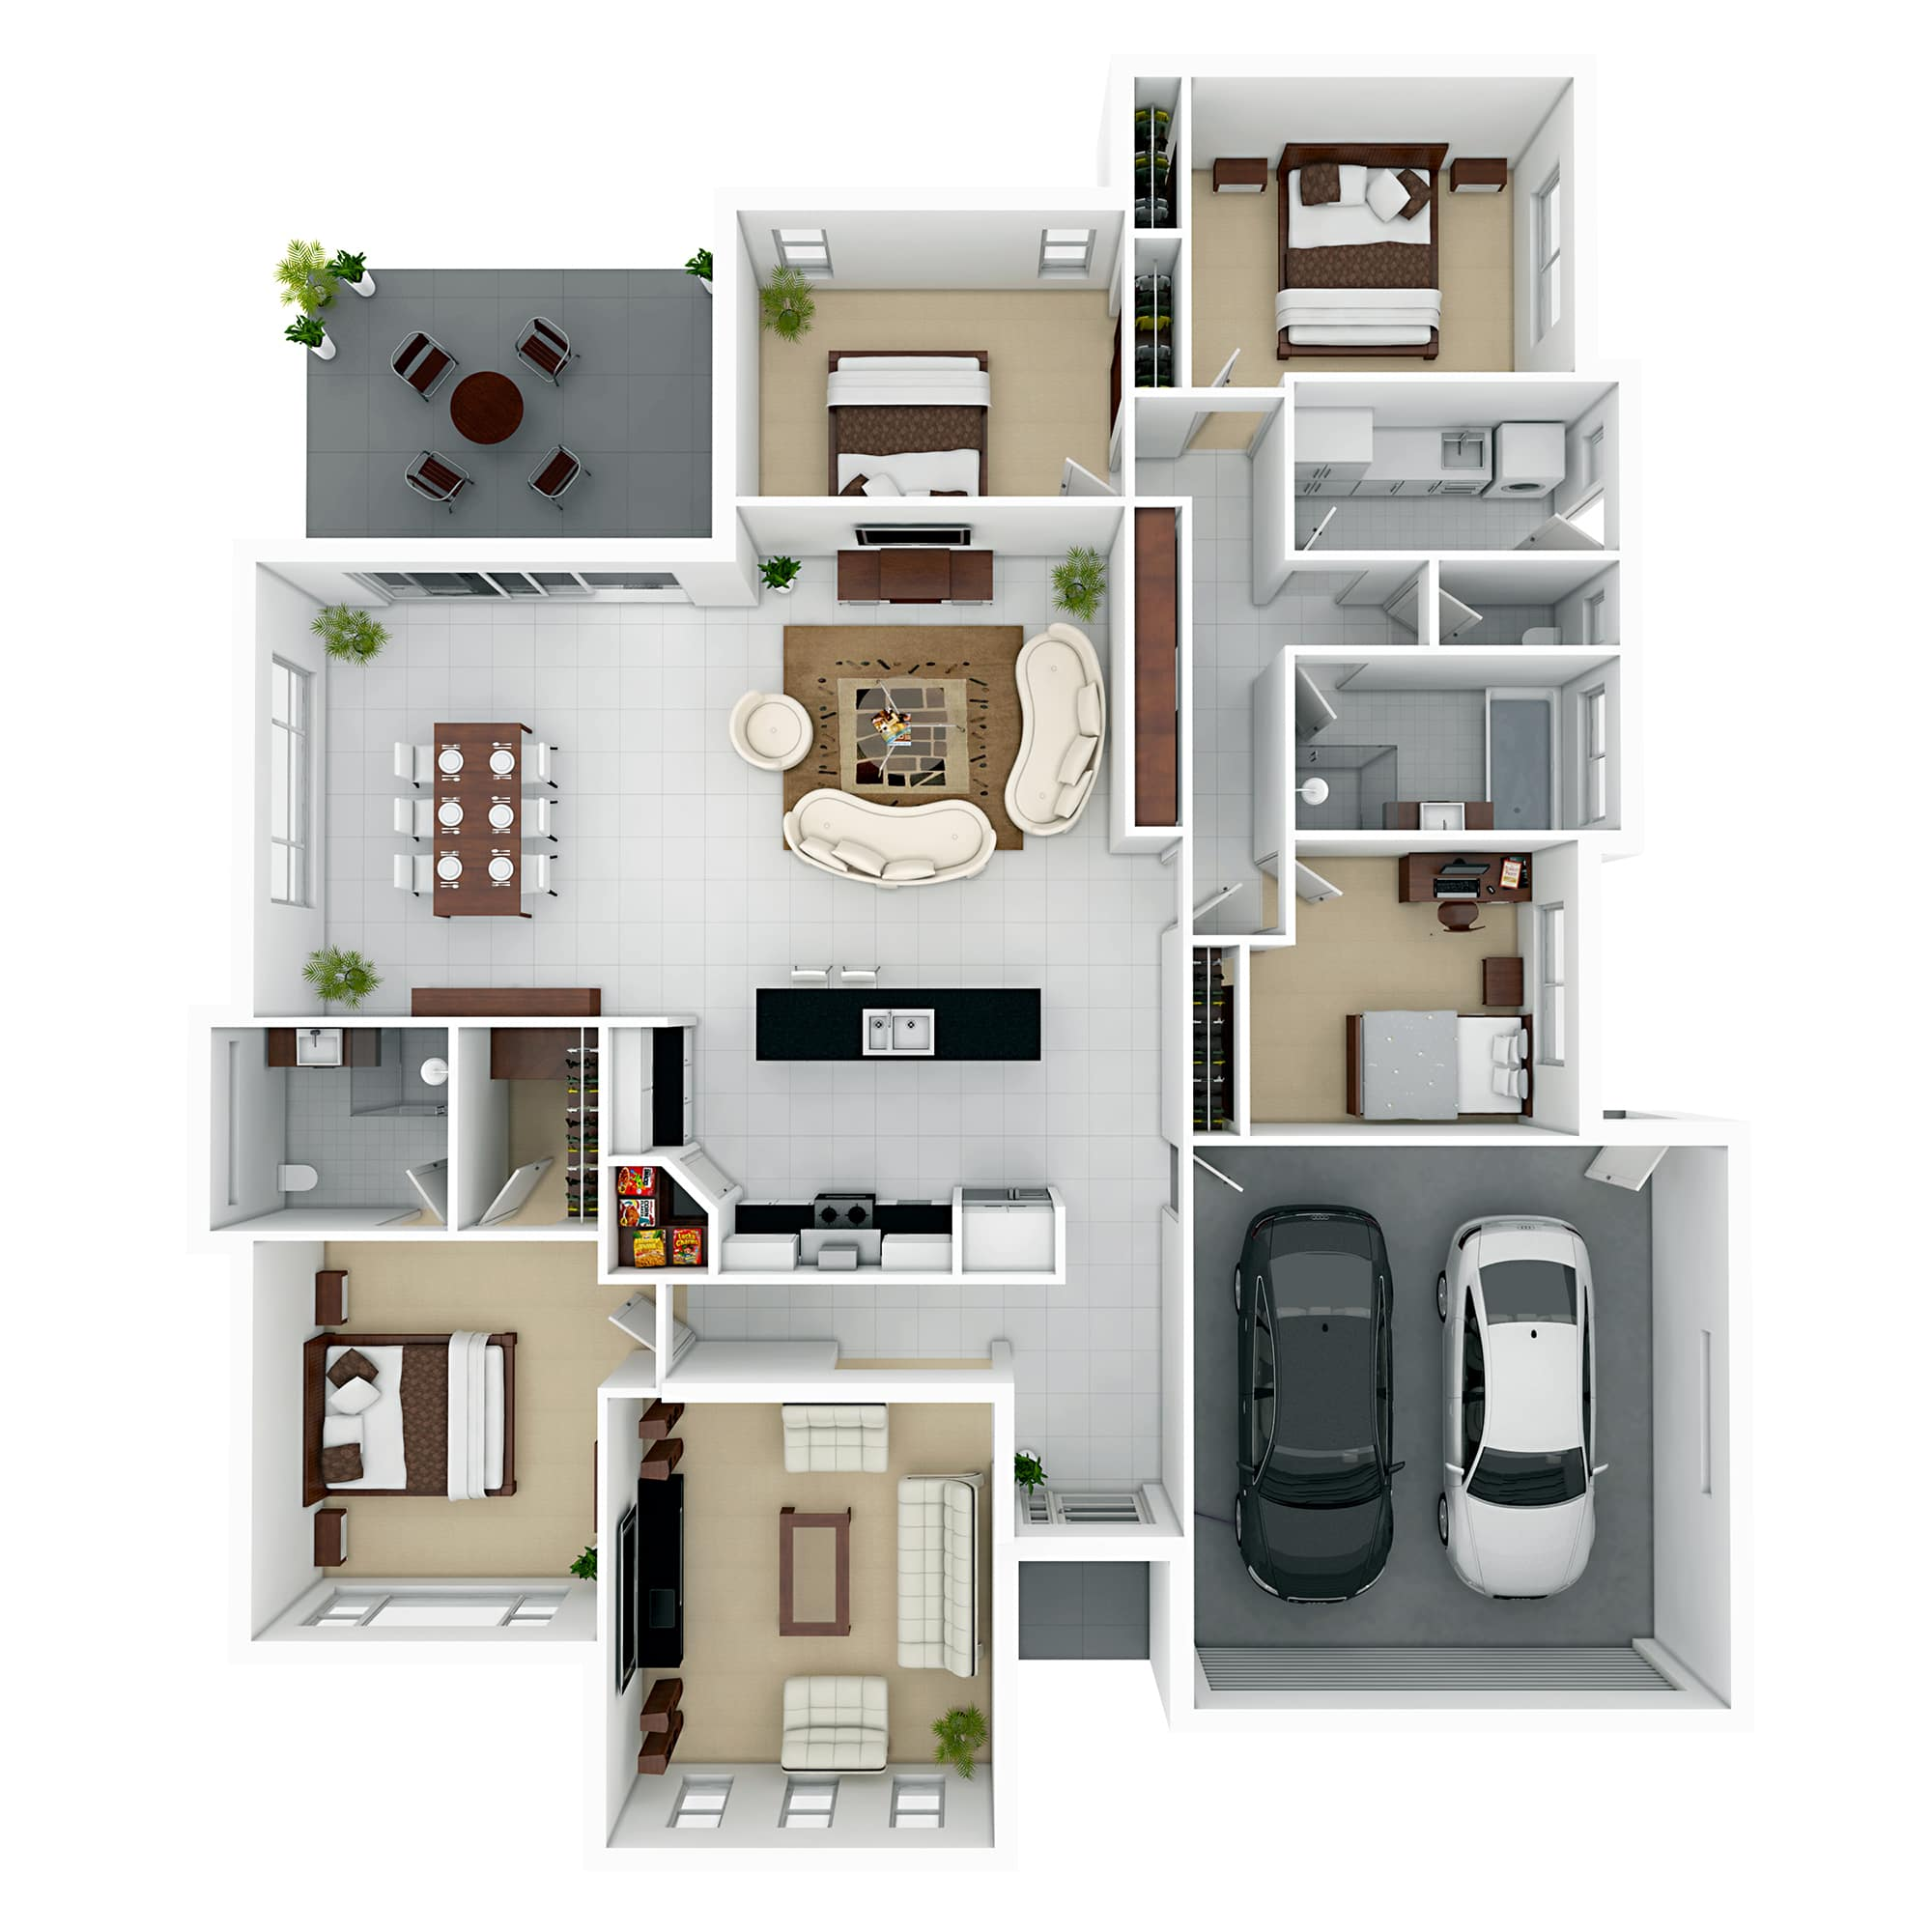 3d floor plans 3d design studio floor plan company for 3d bedroom planner